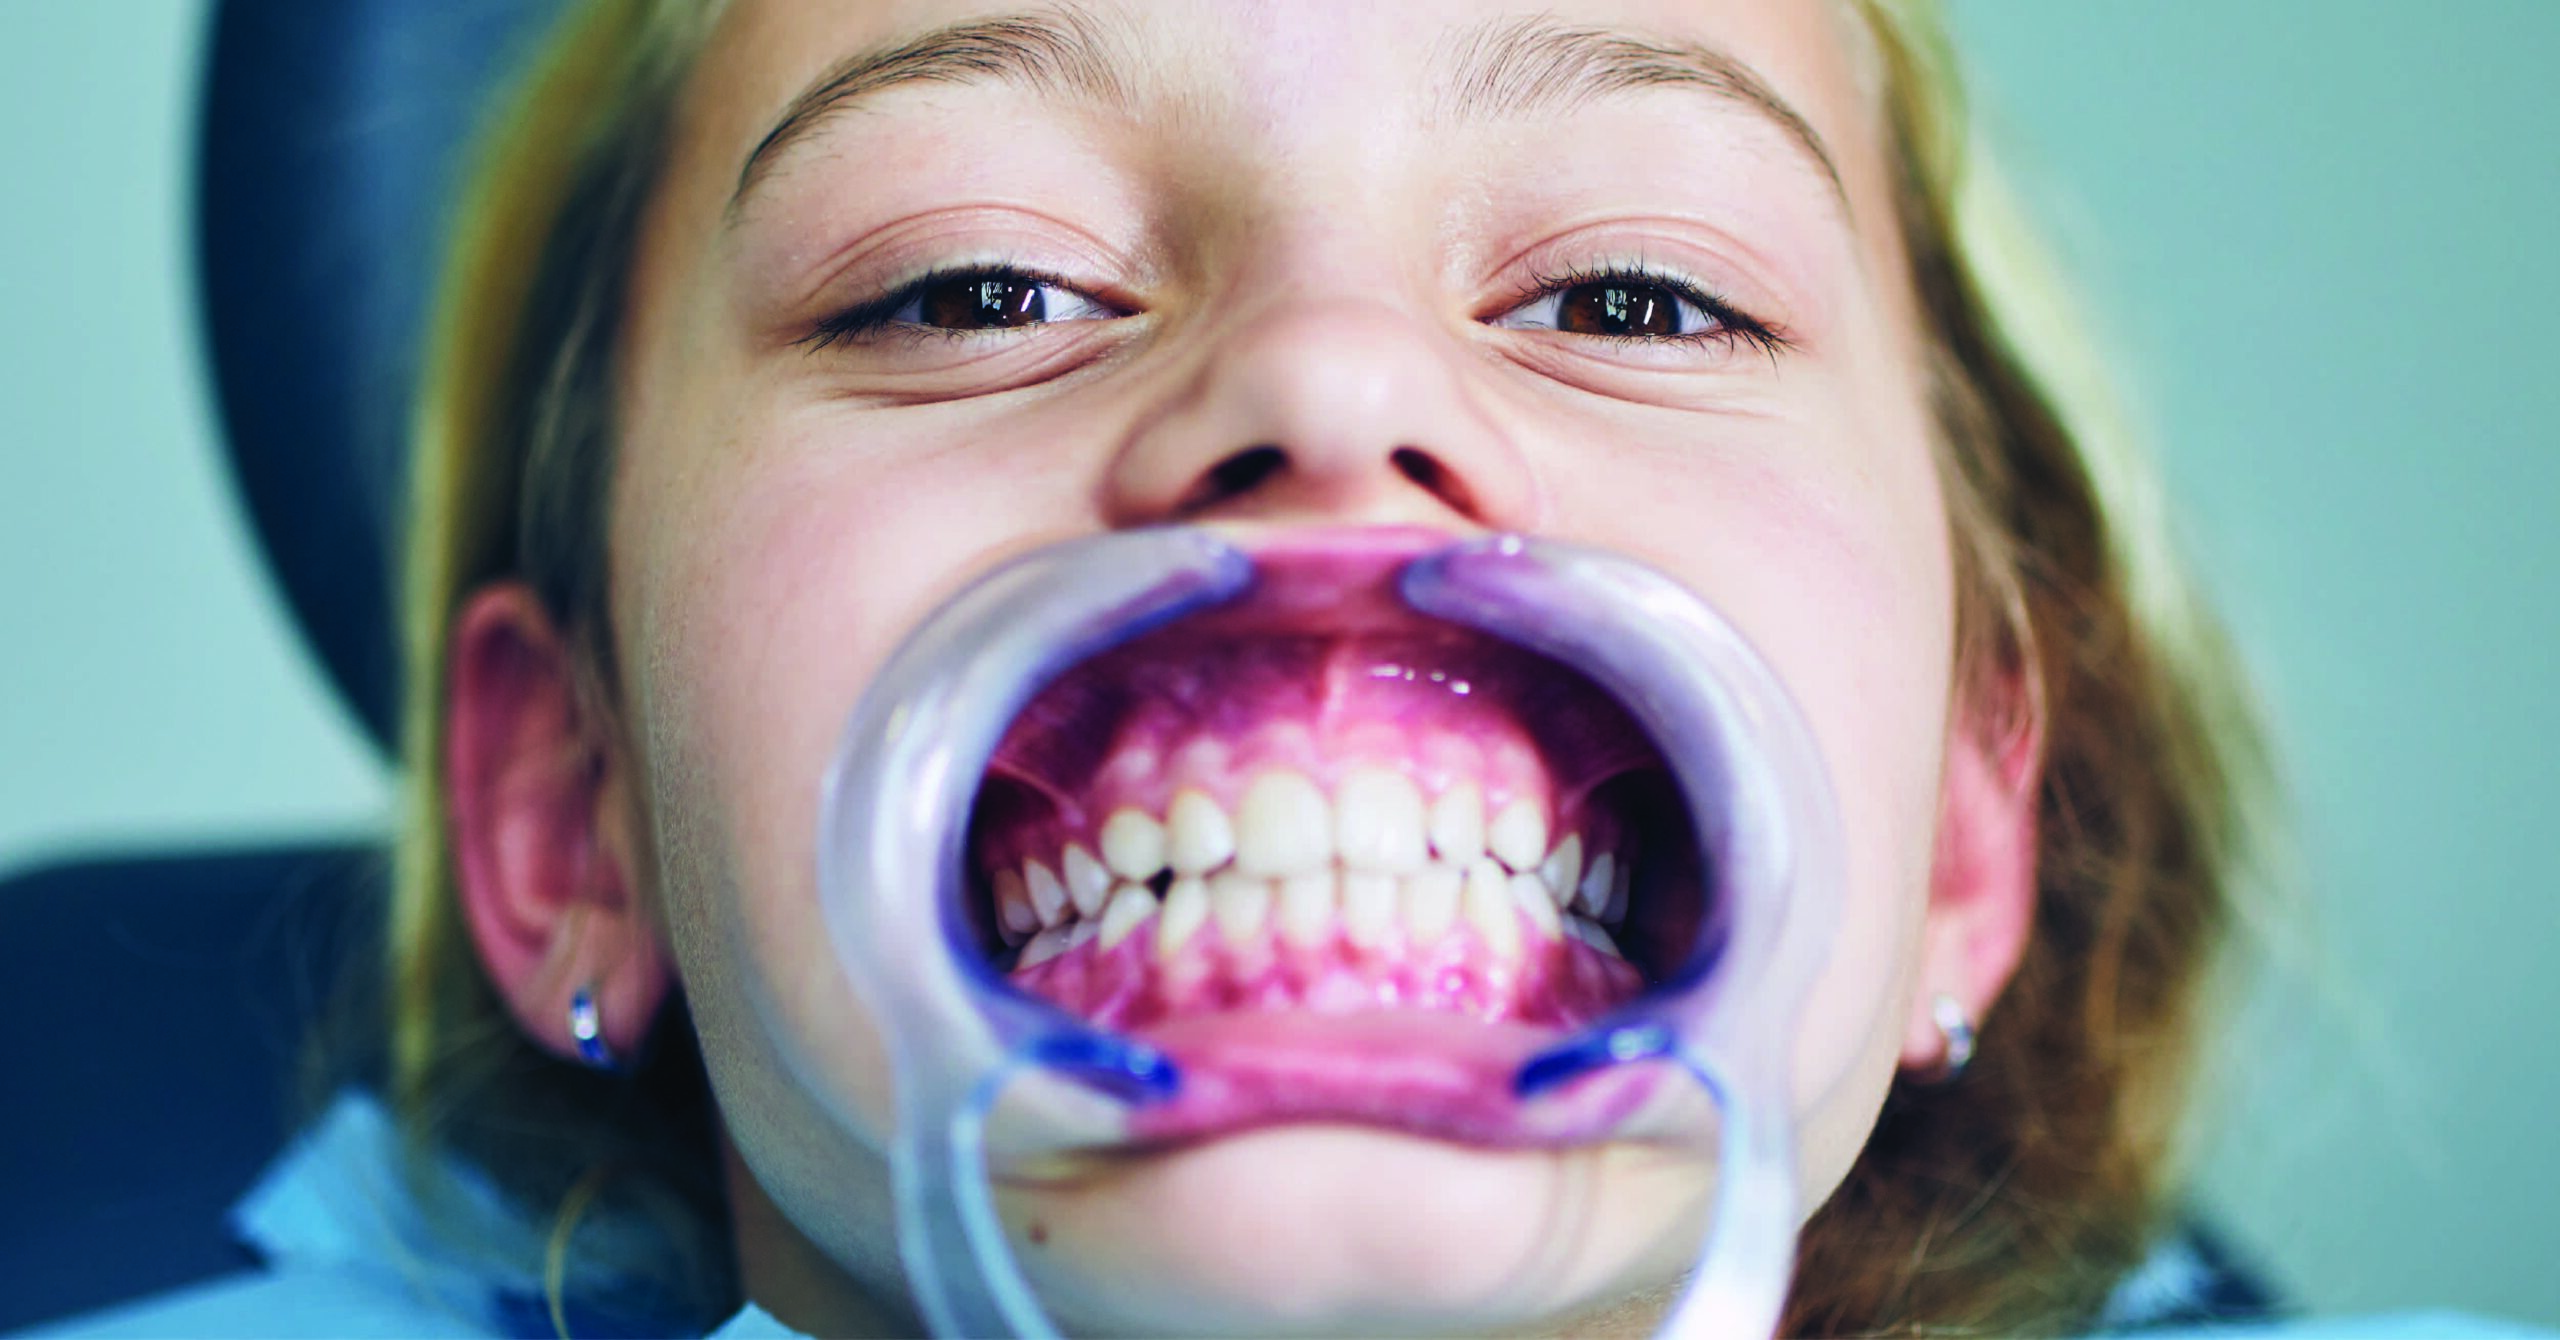 TIPS TO PREPARE FOR YOUR CHILD'S DENTAL APPOINTMENT